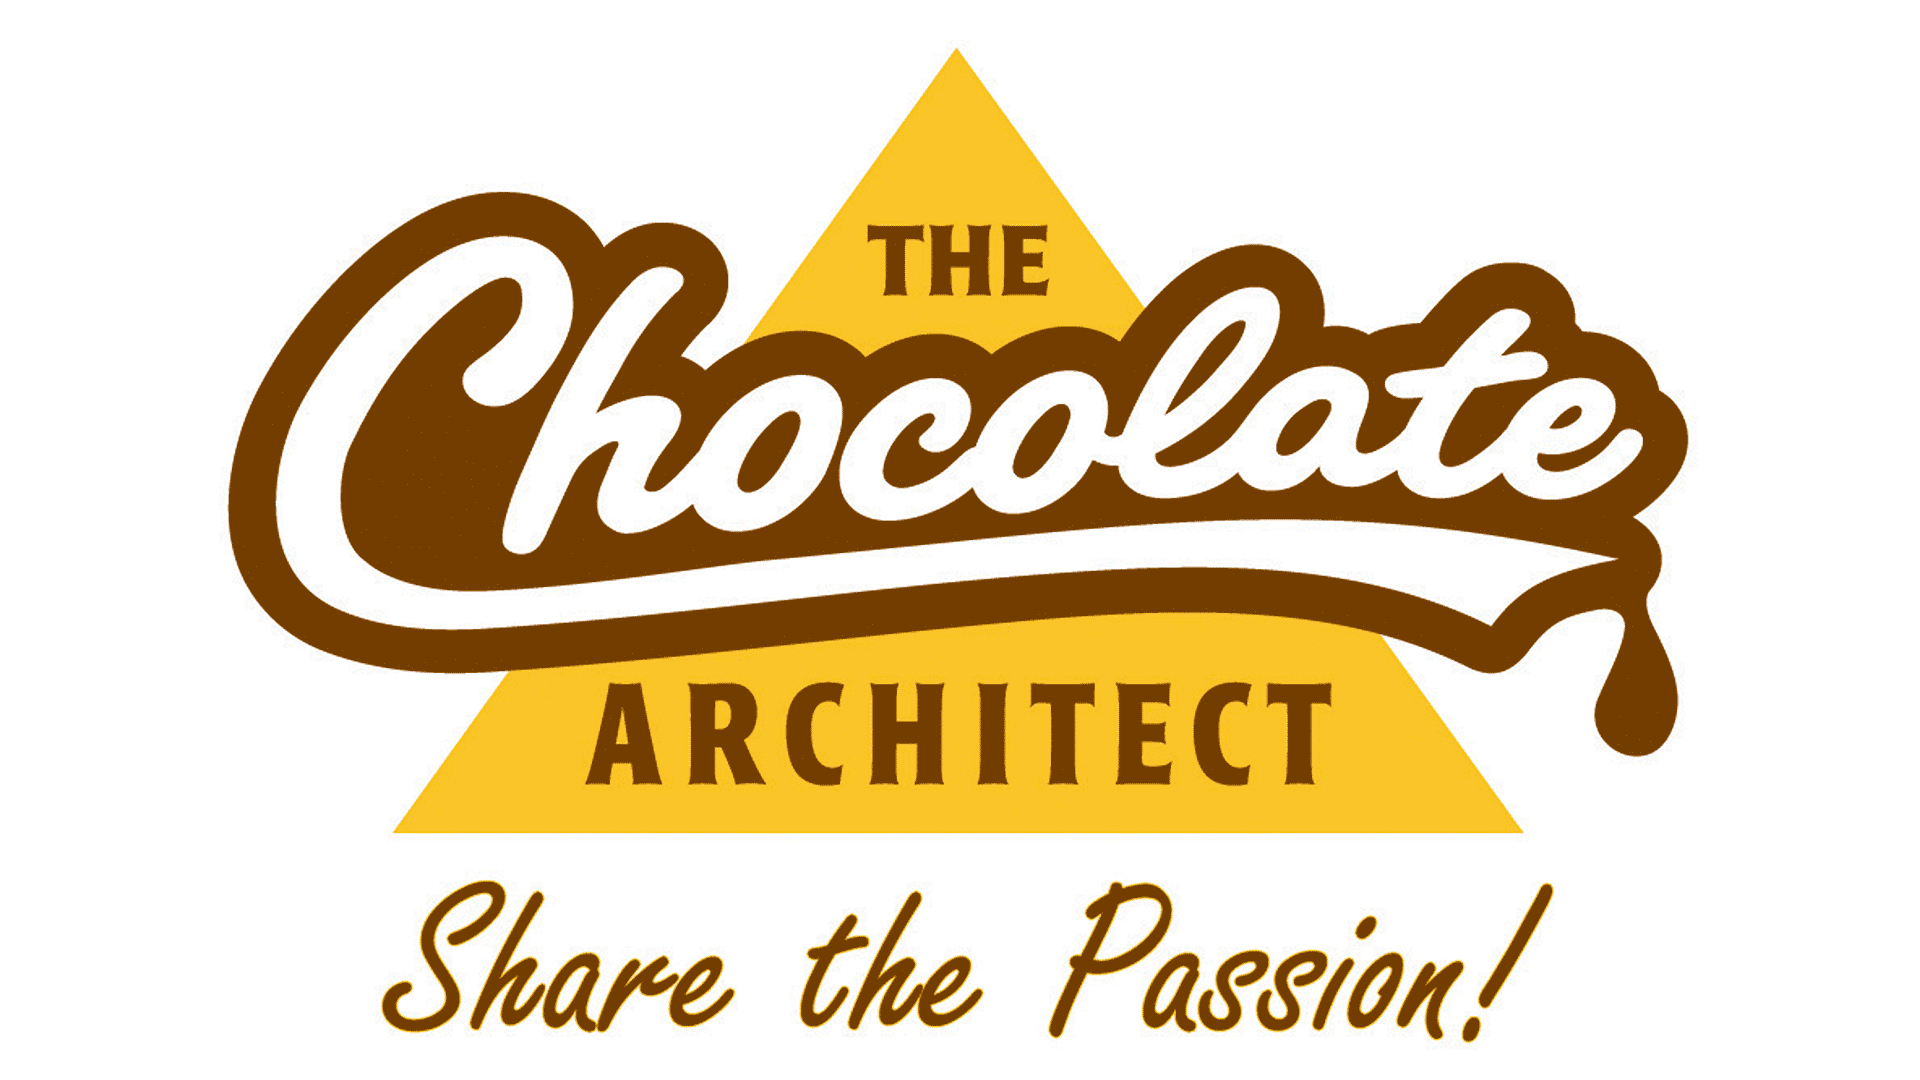 The Chocolate Architect